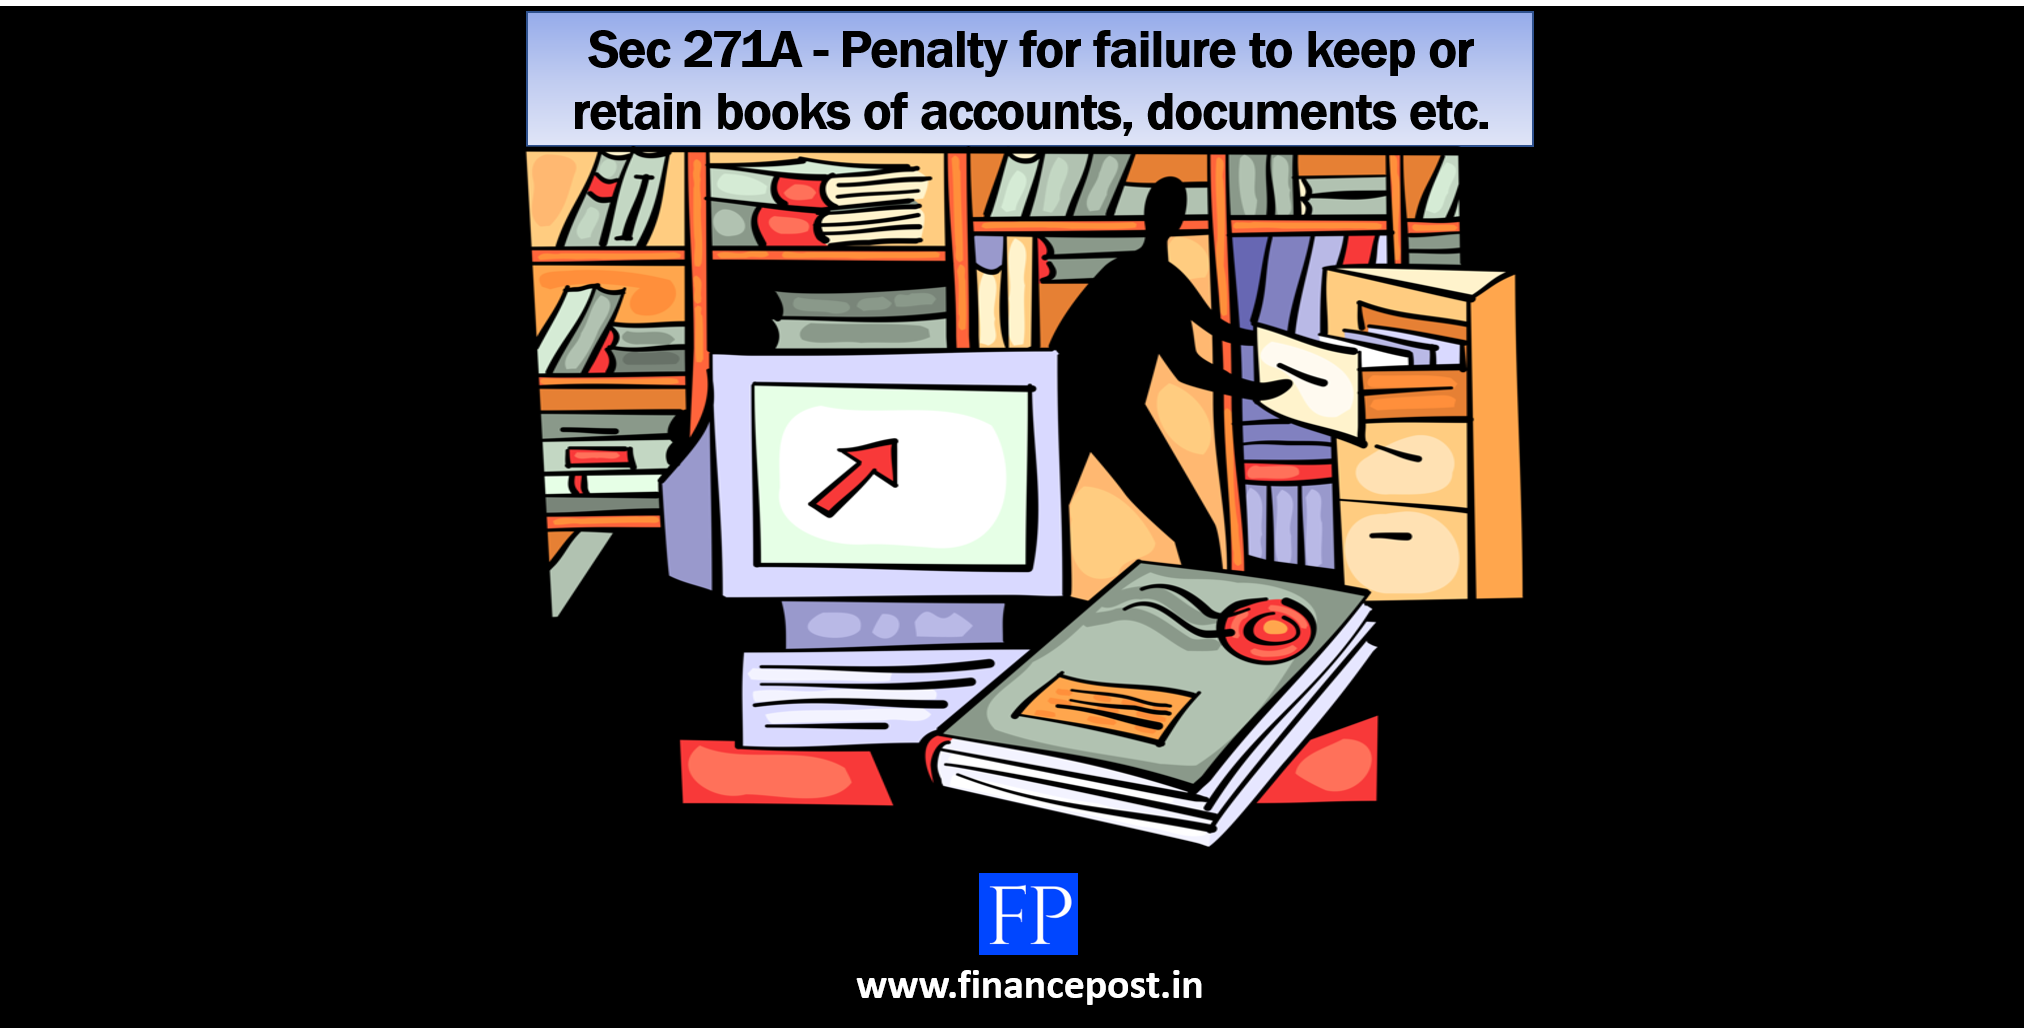 Sec 271A - Penalty for failure to keep or retain books of accounts, documents